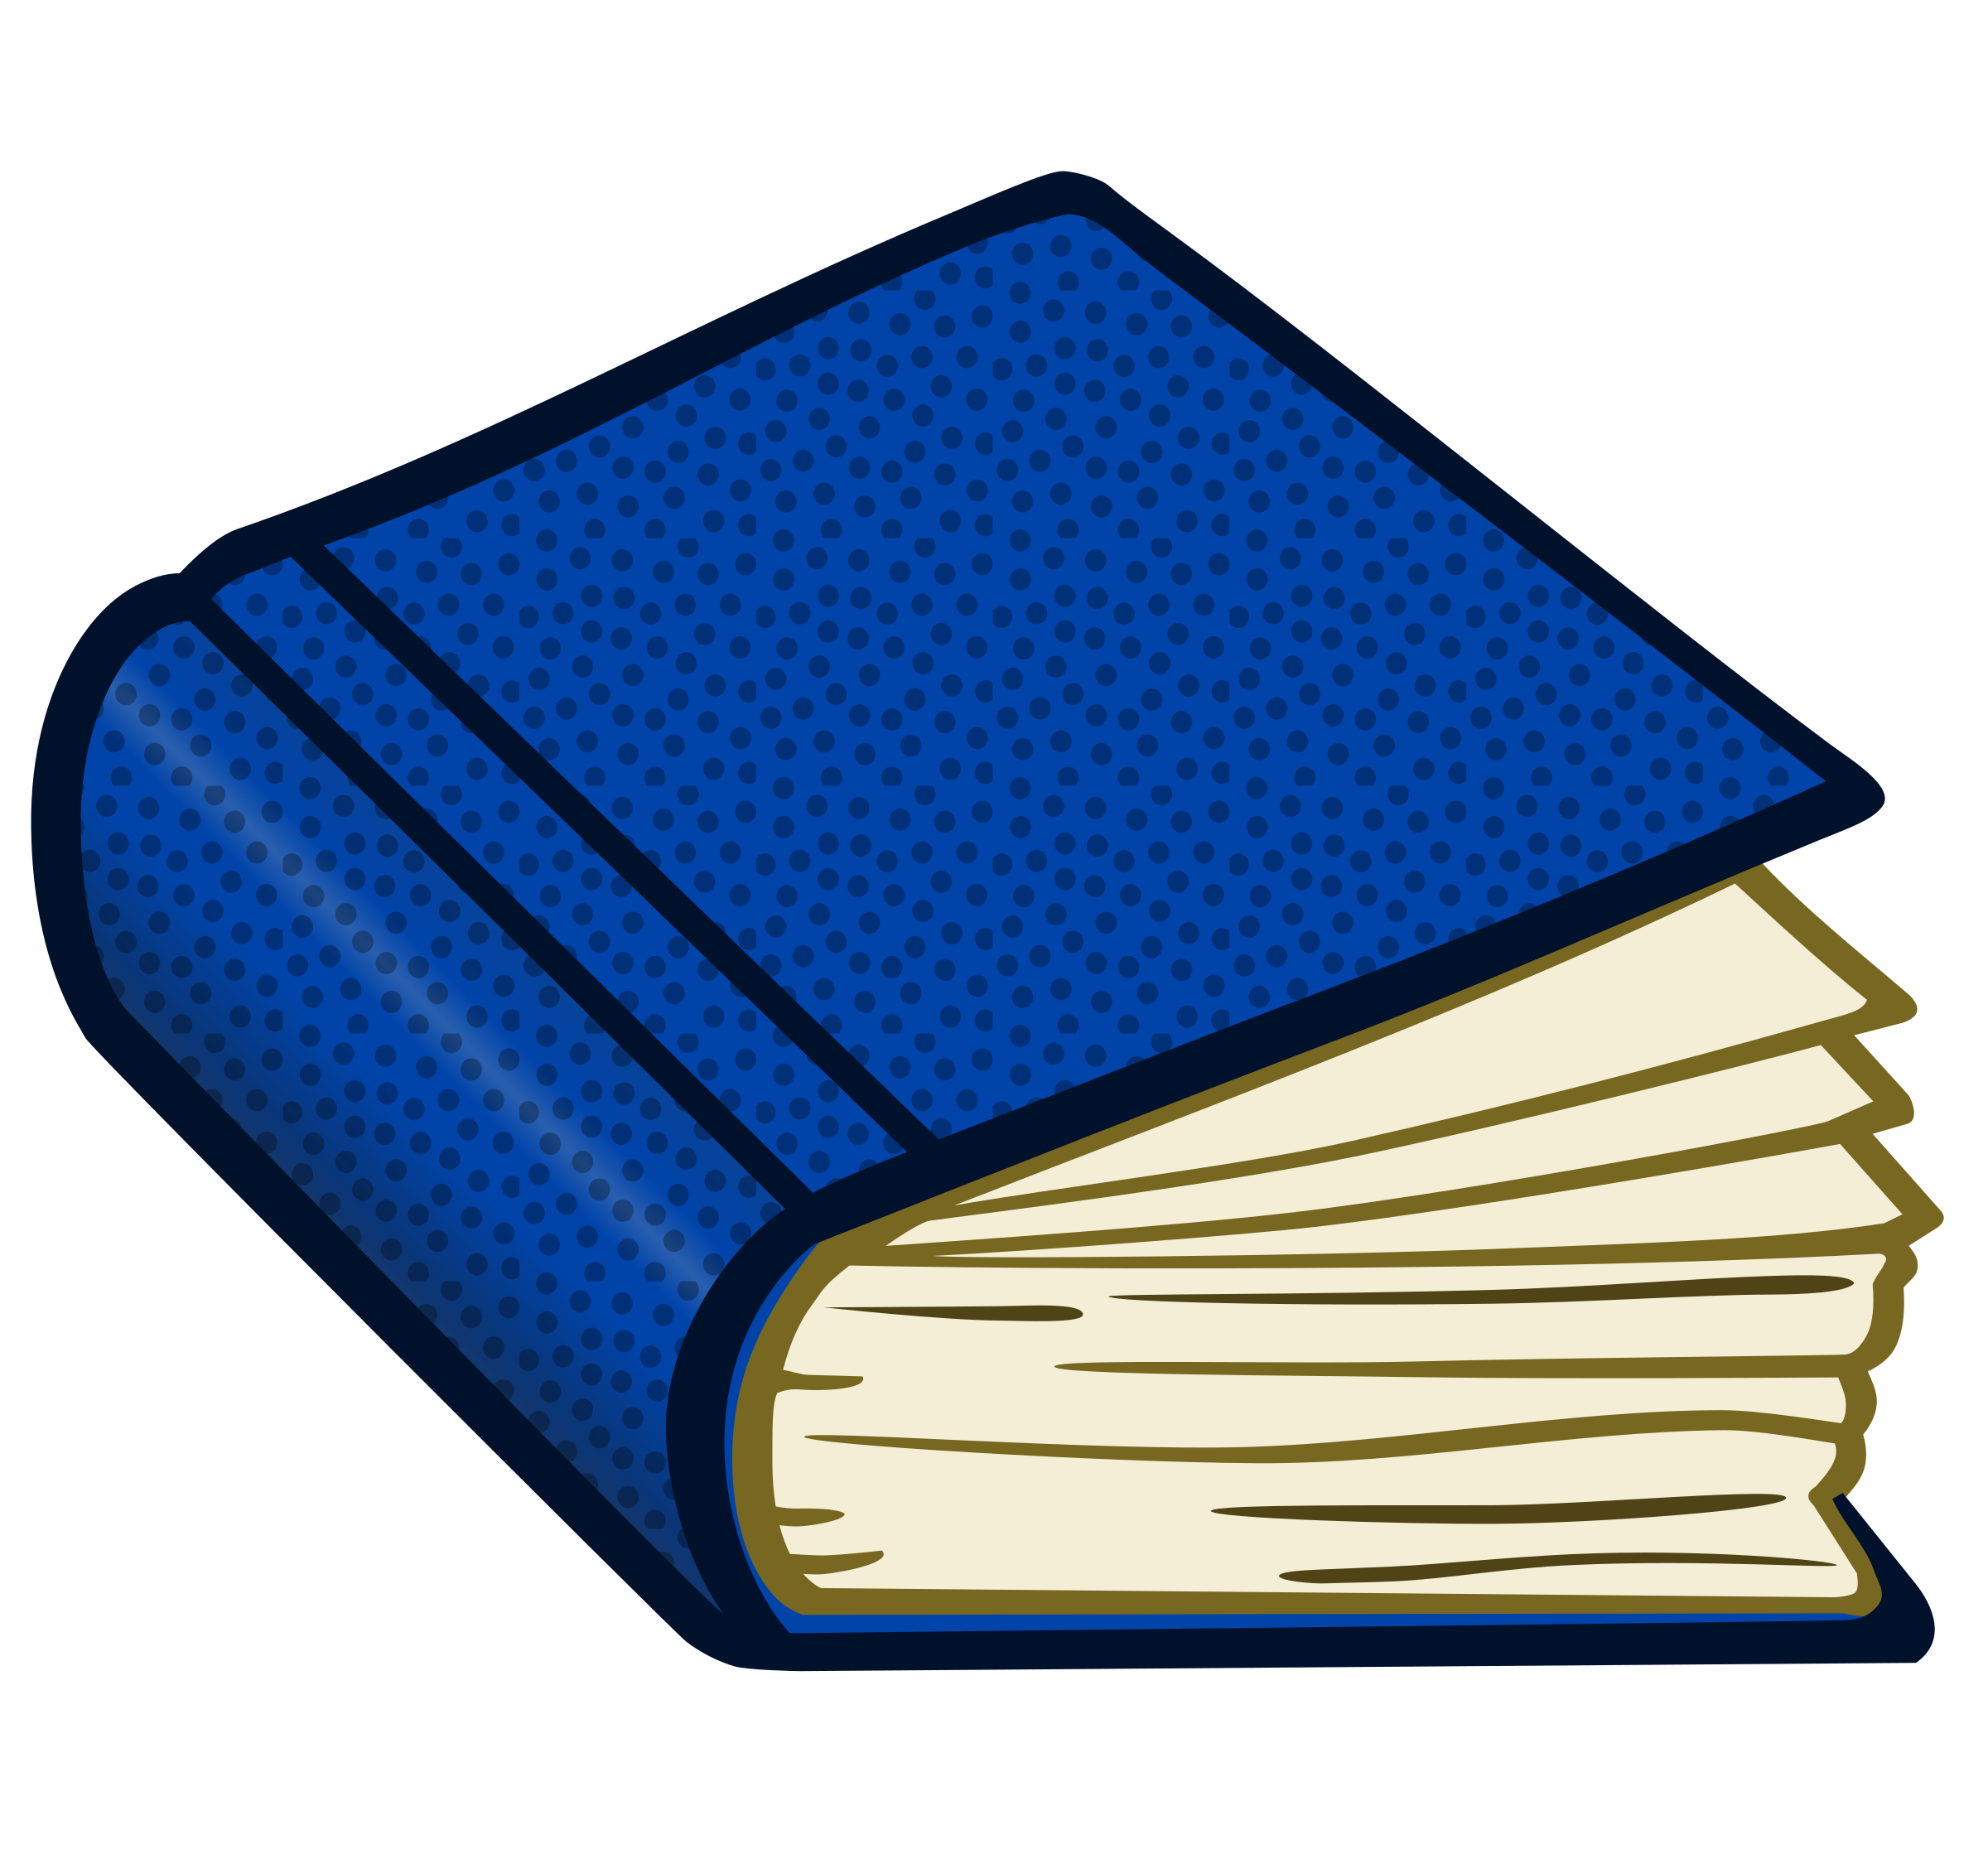 Buch clipart 2 clipart station for Books clipart